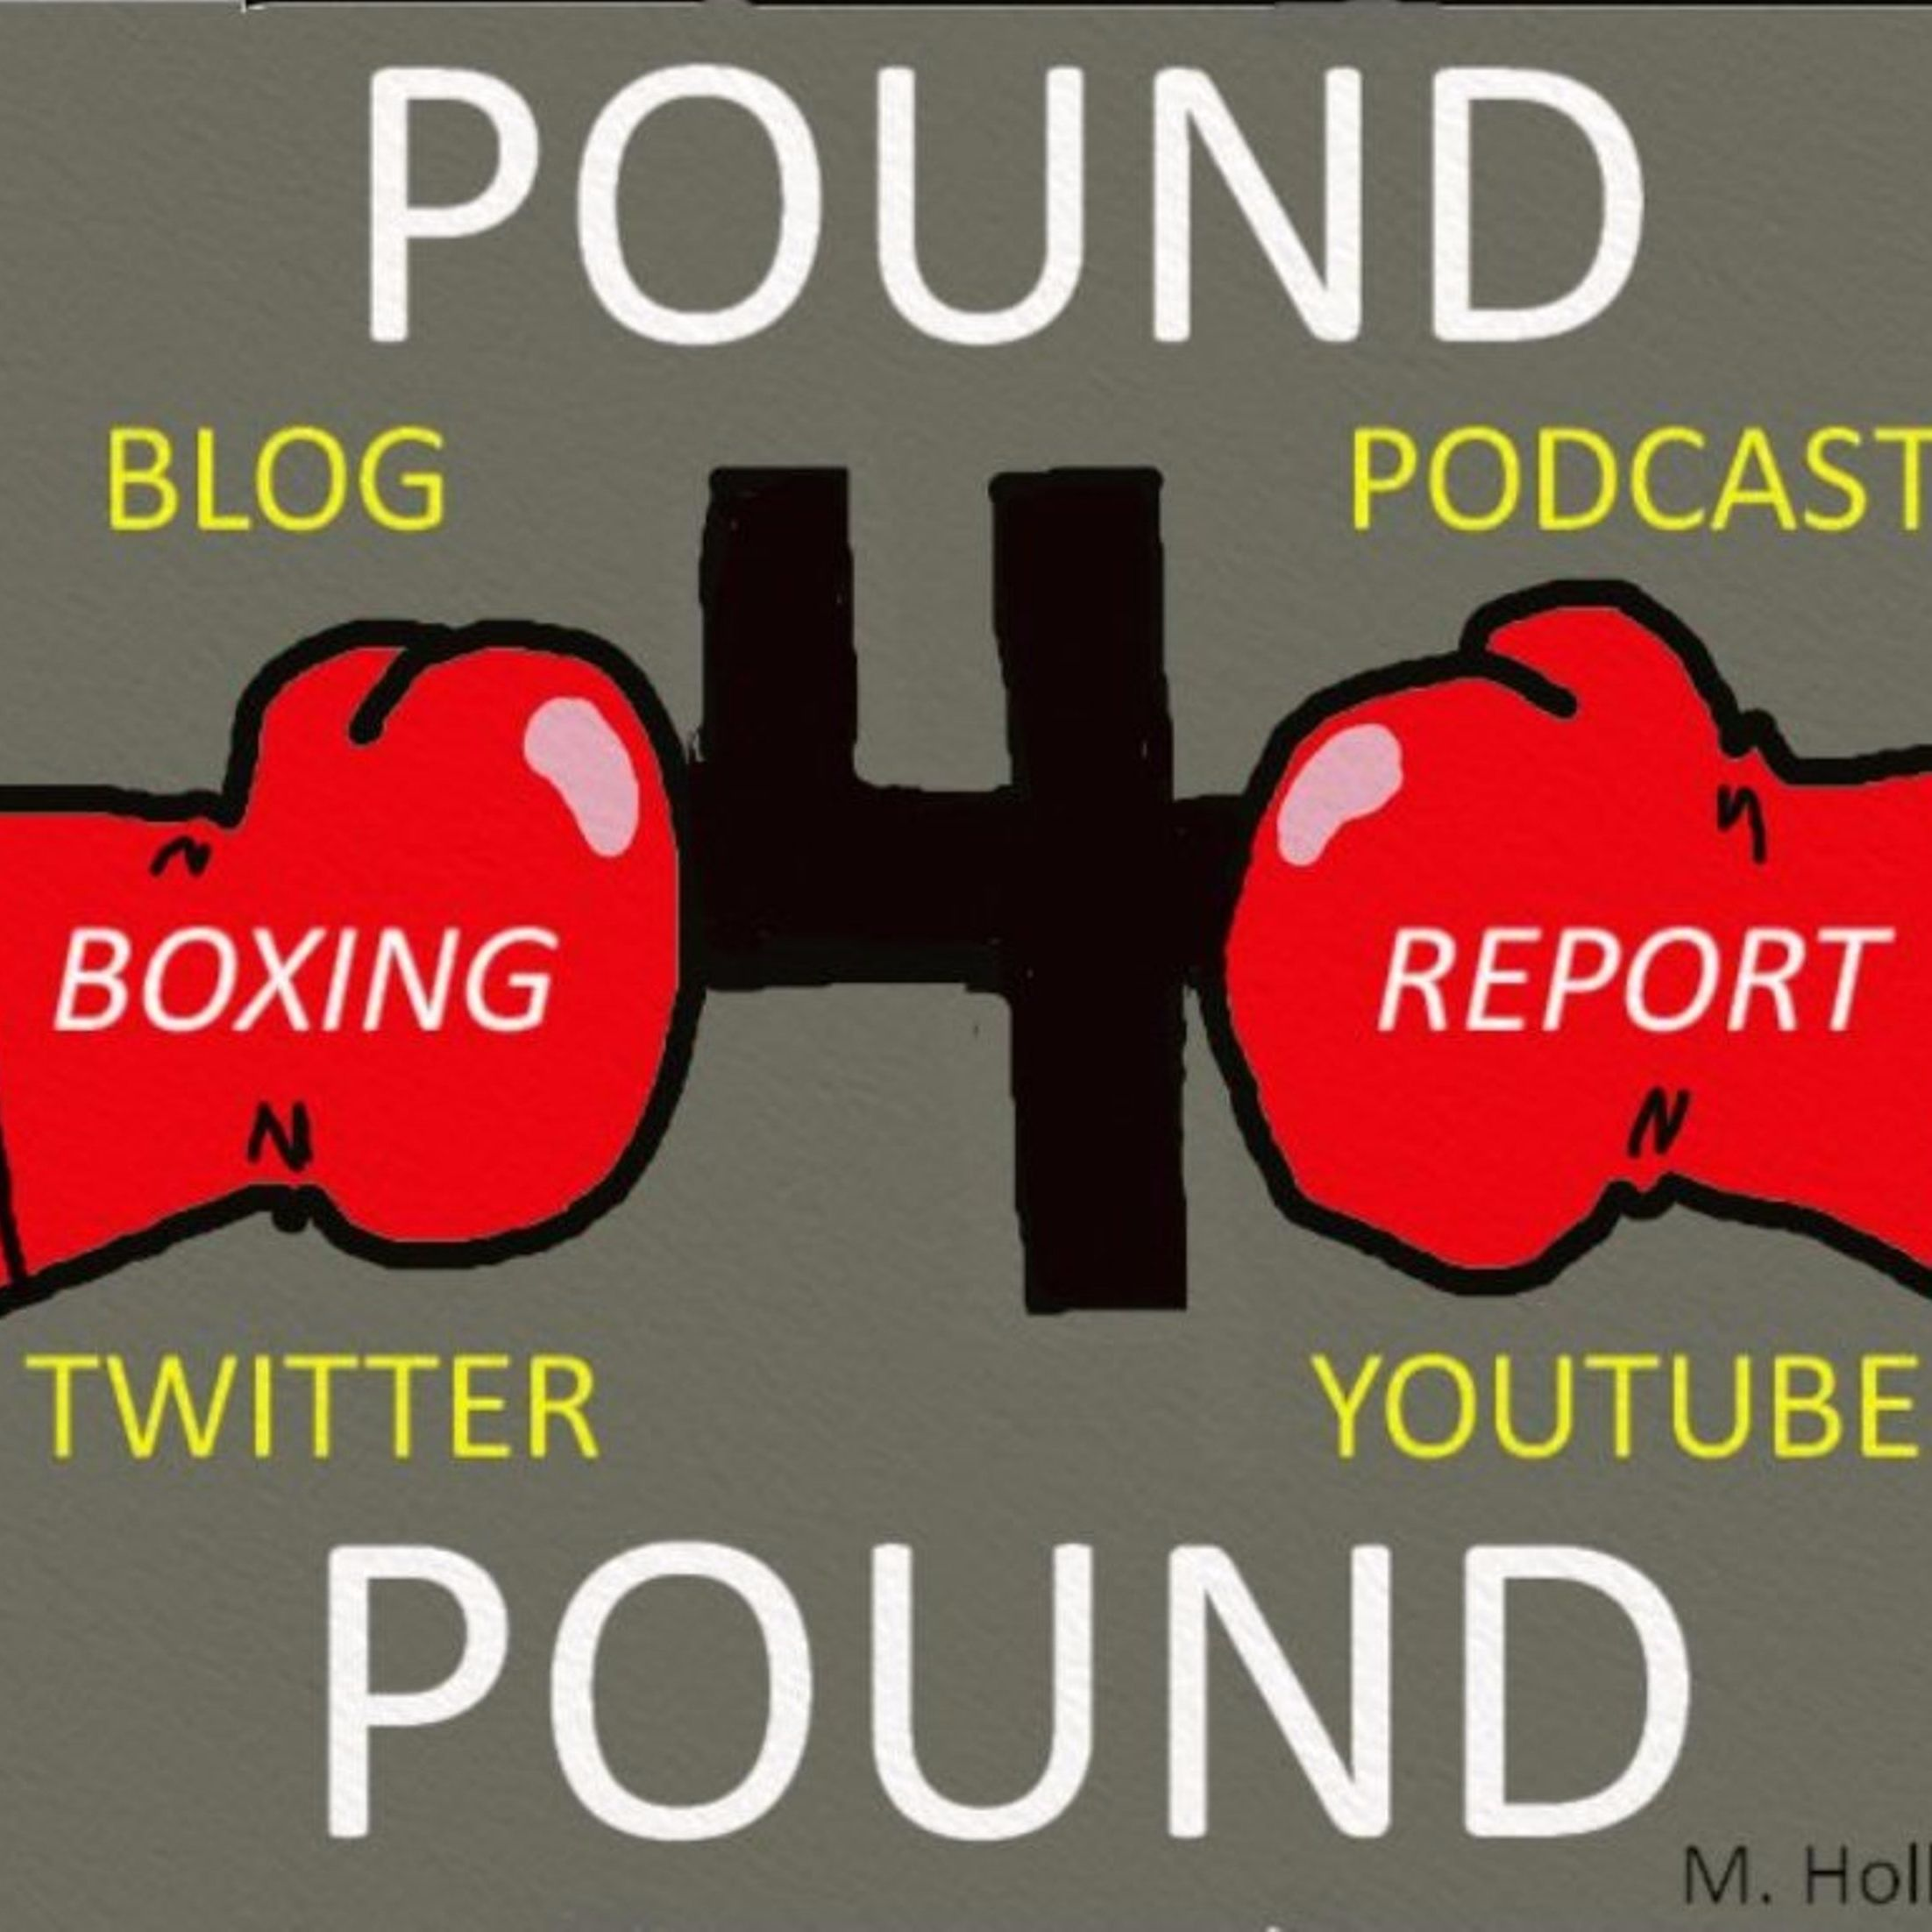 Pound 4 Pound Boxing Report